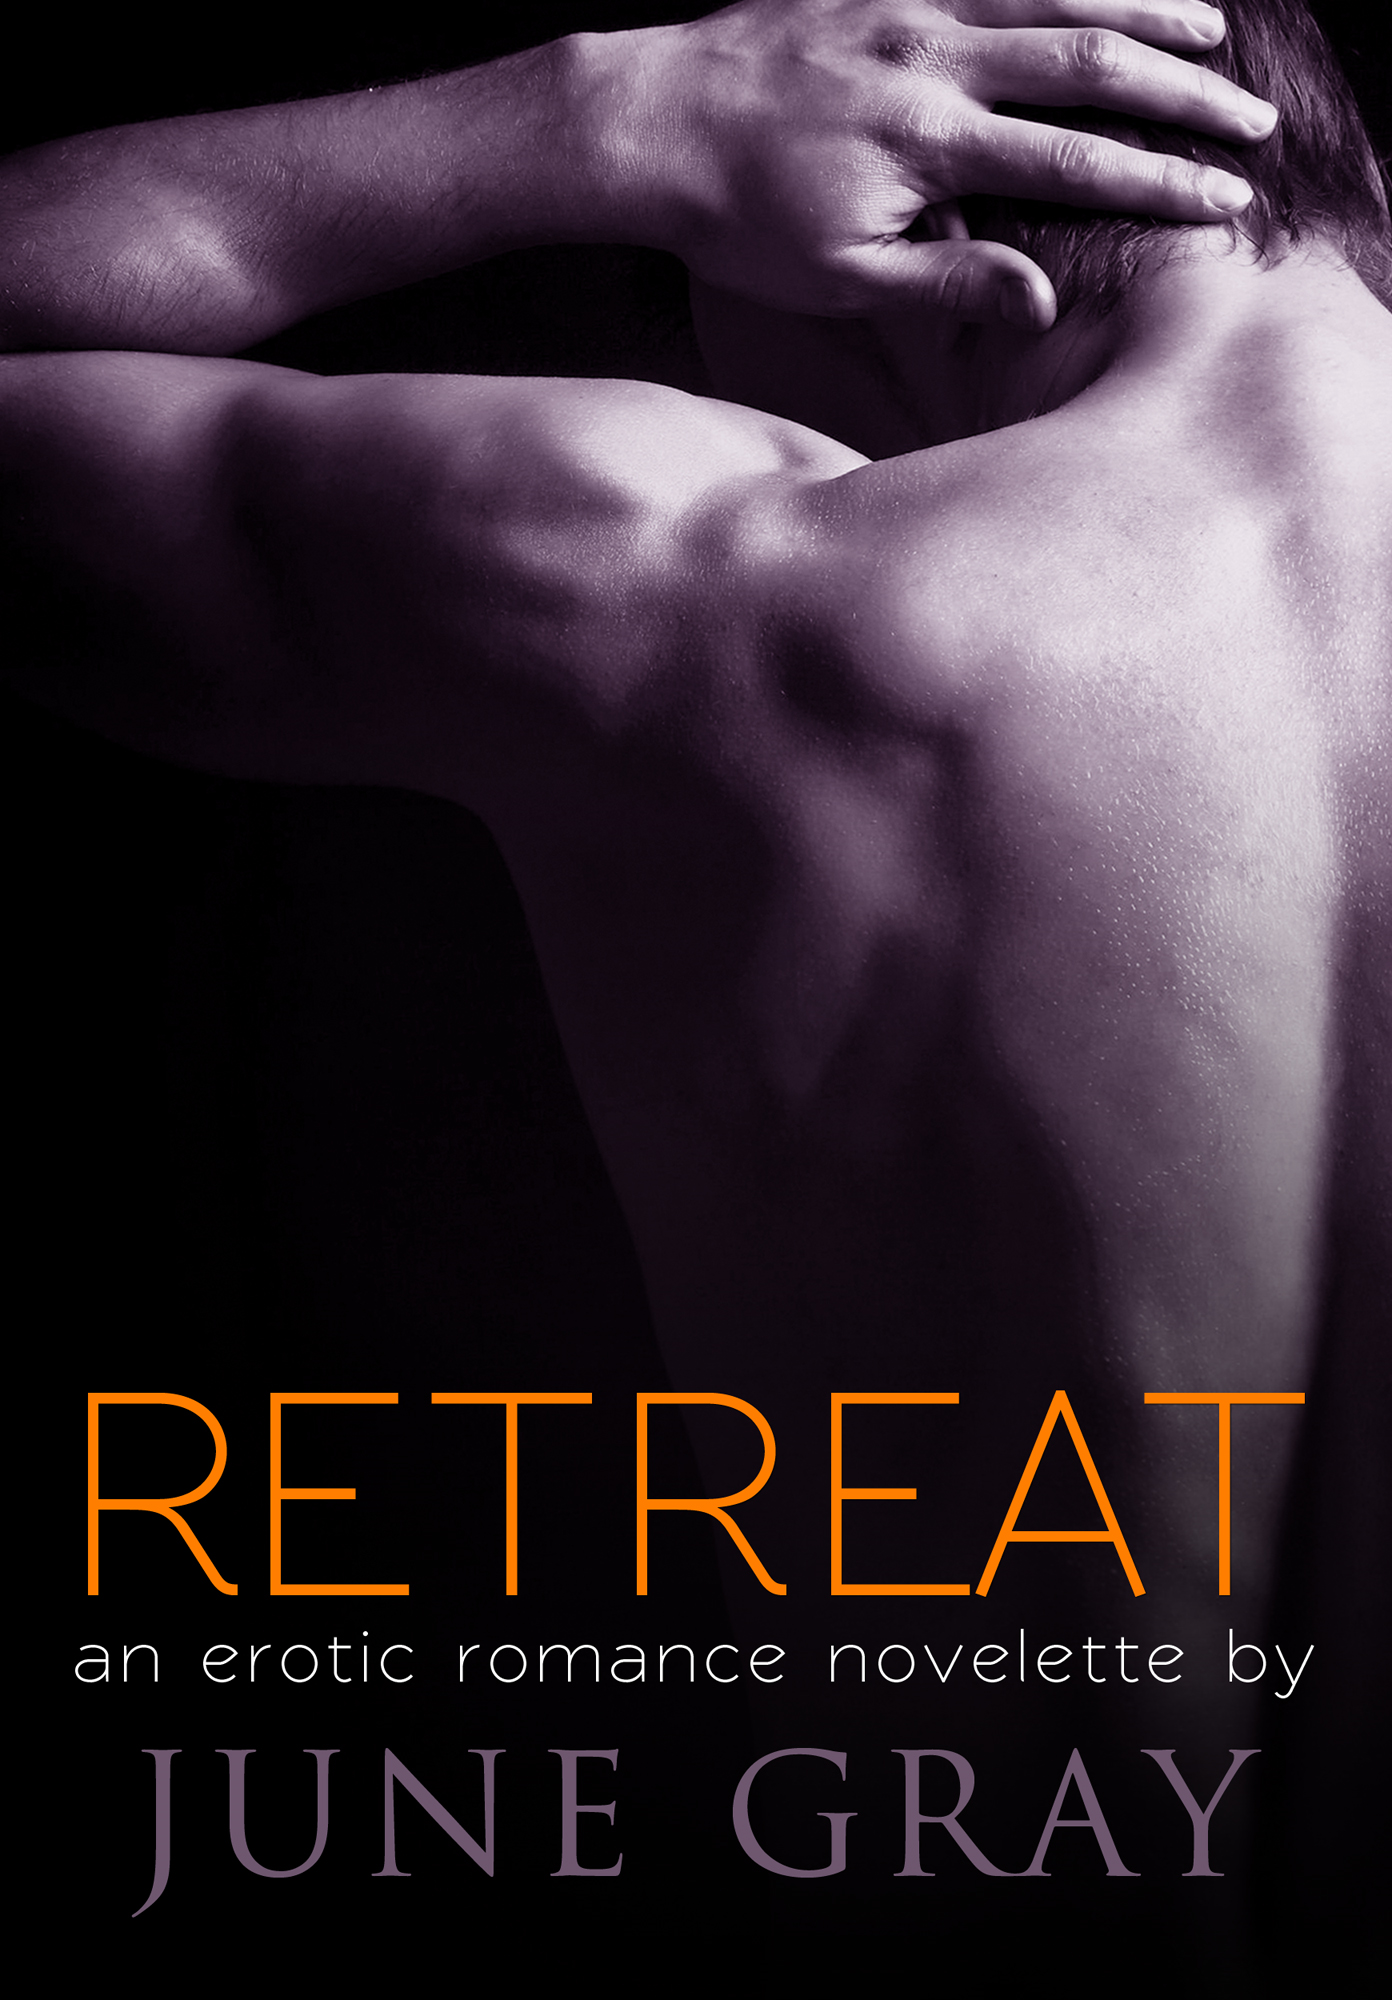 RETREAT (An Erotic Romance Novelette)